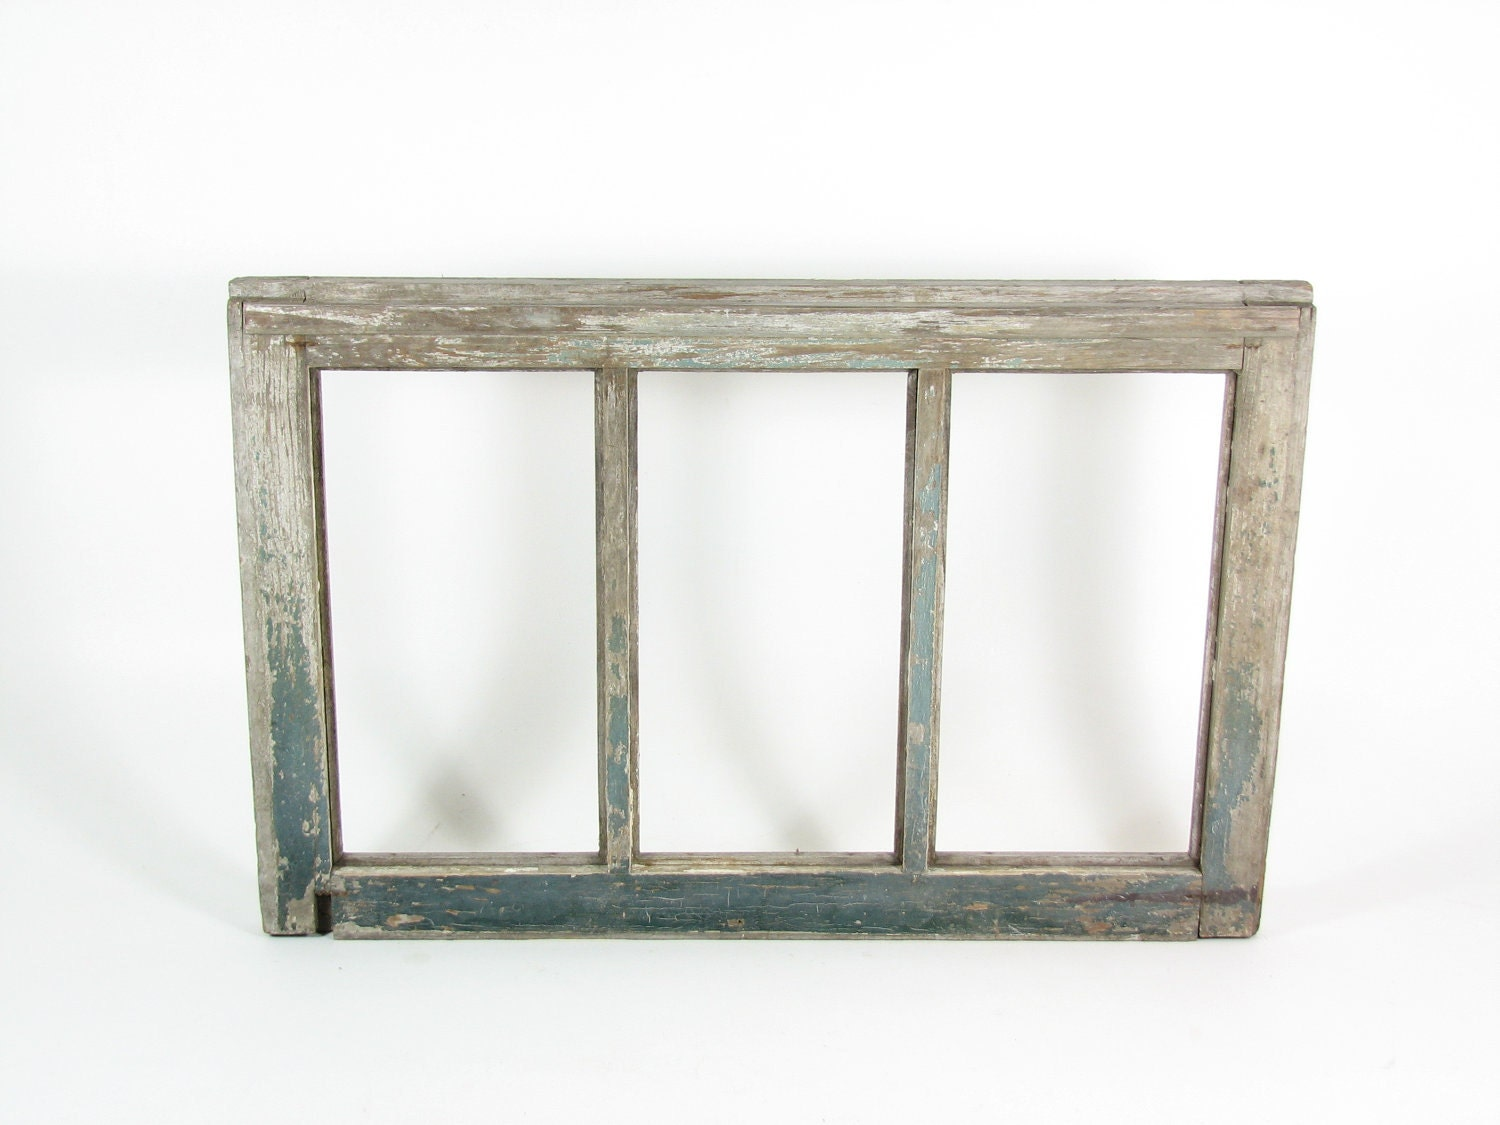 vintage wood window frame 3 pane without glass weathered wood